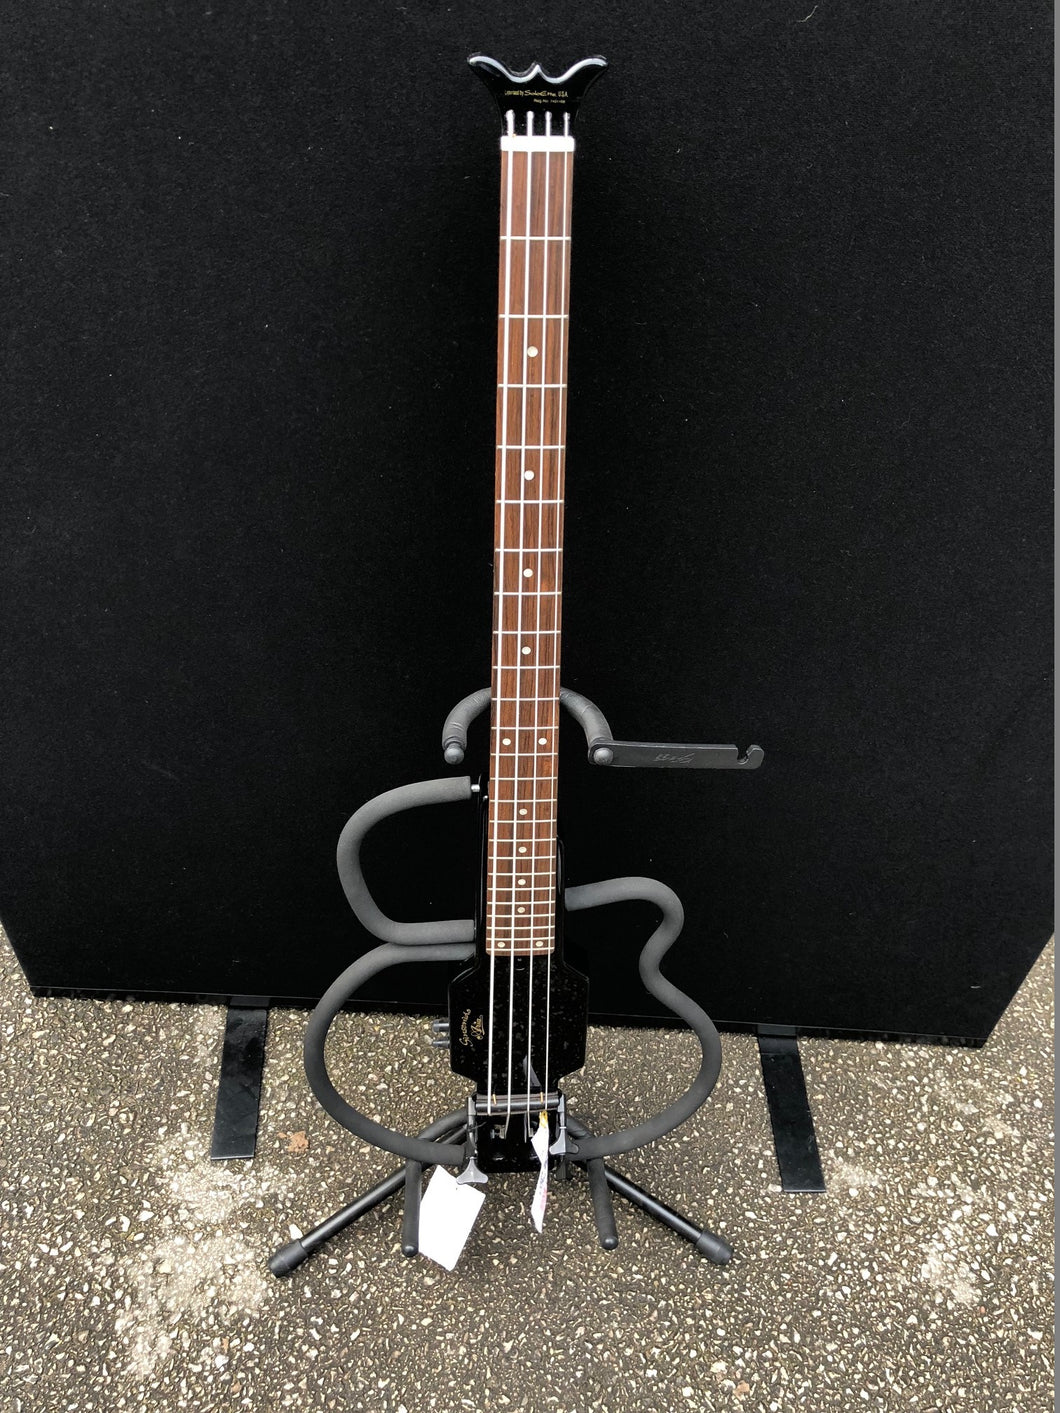 Aria Sinsonido Limited Edition Black Bass Guitar - Flogit2us.com